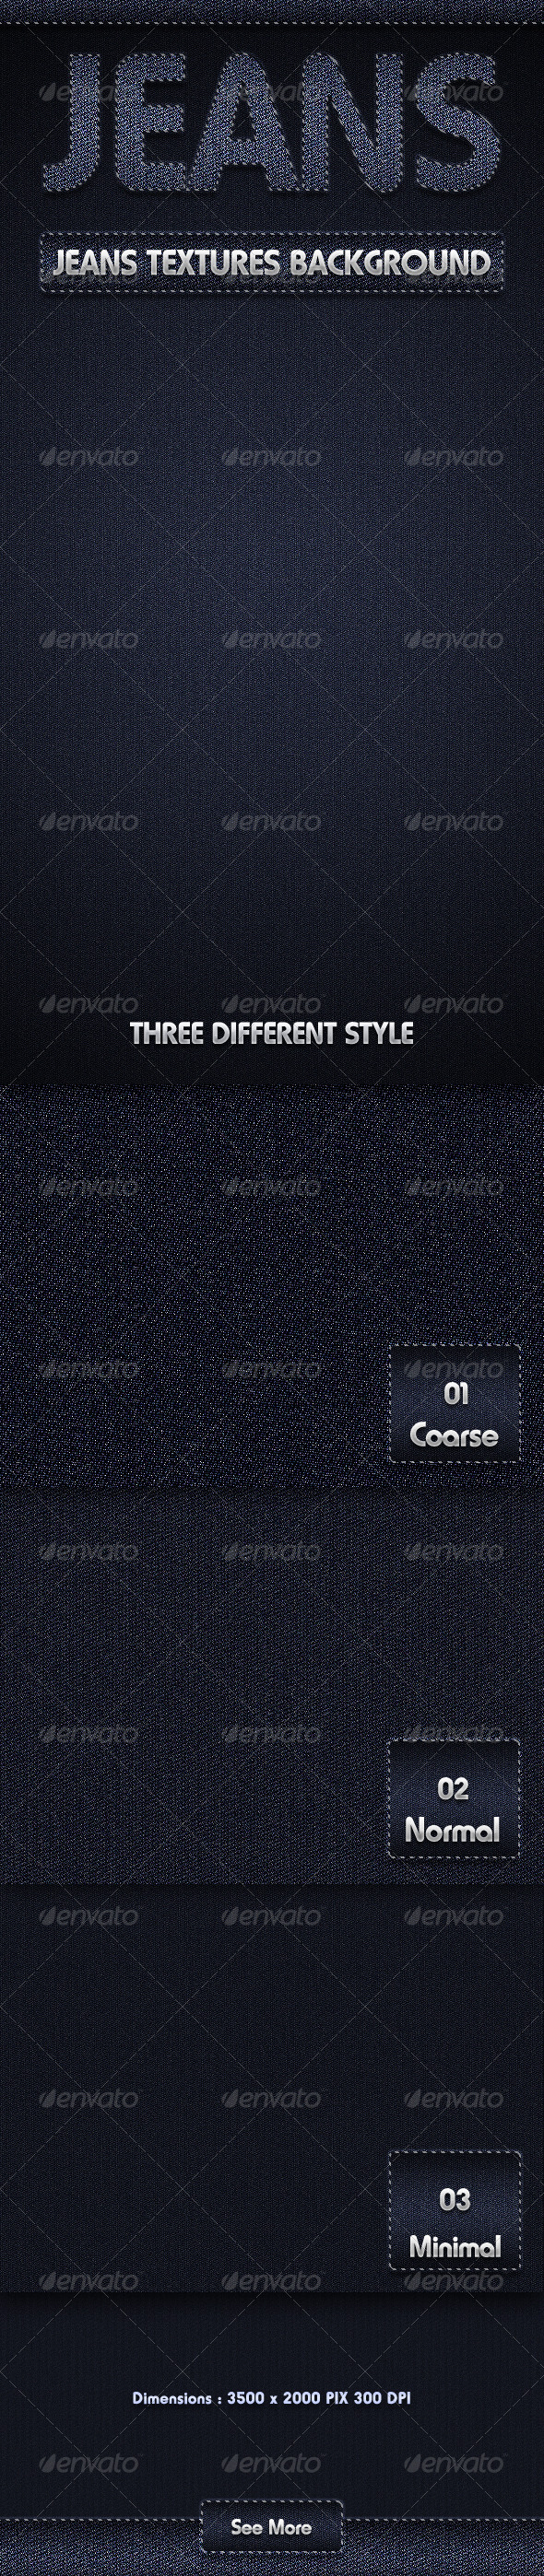 Jeans Textures Background - Patterns Backgrounds